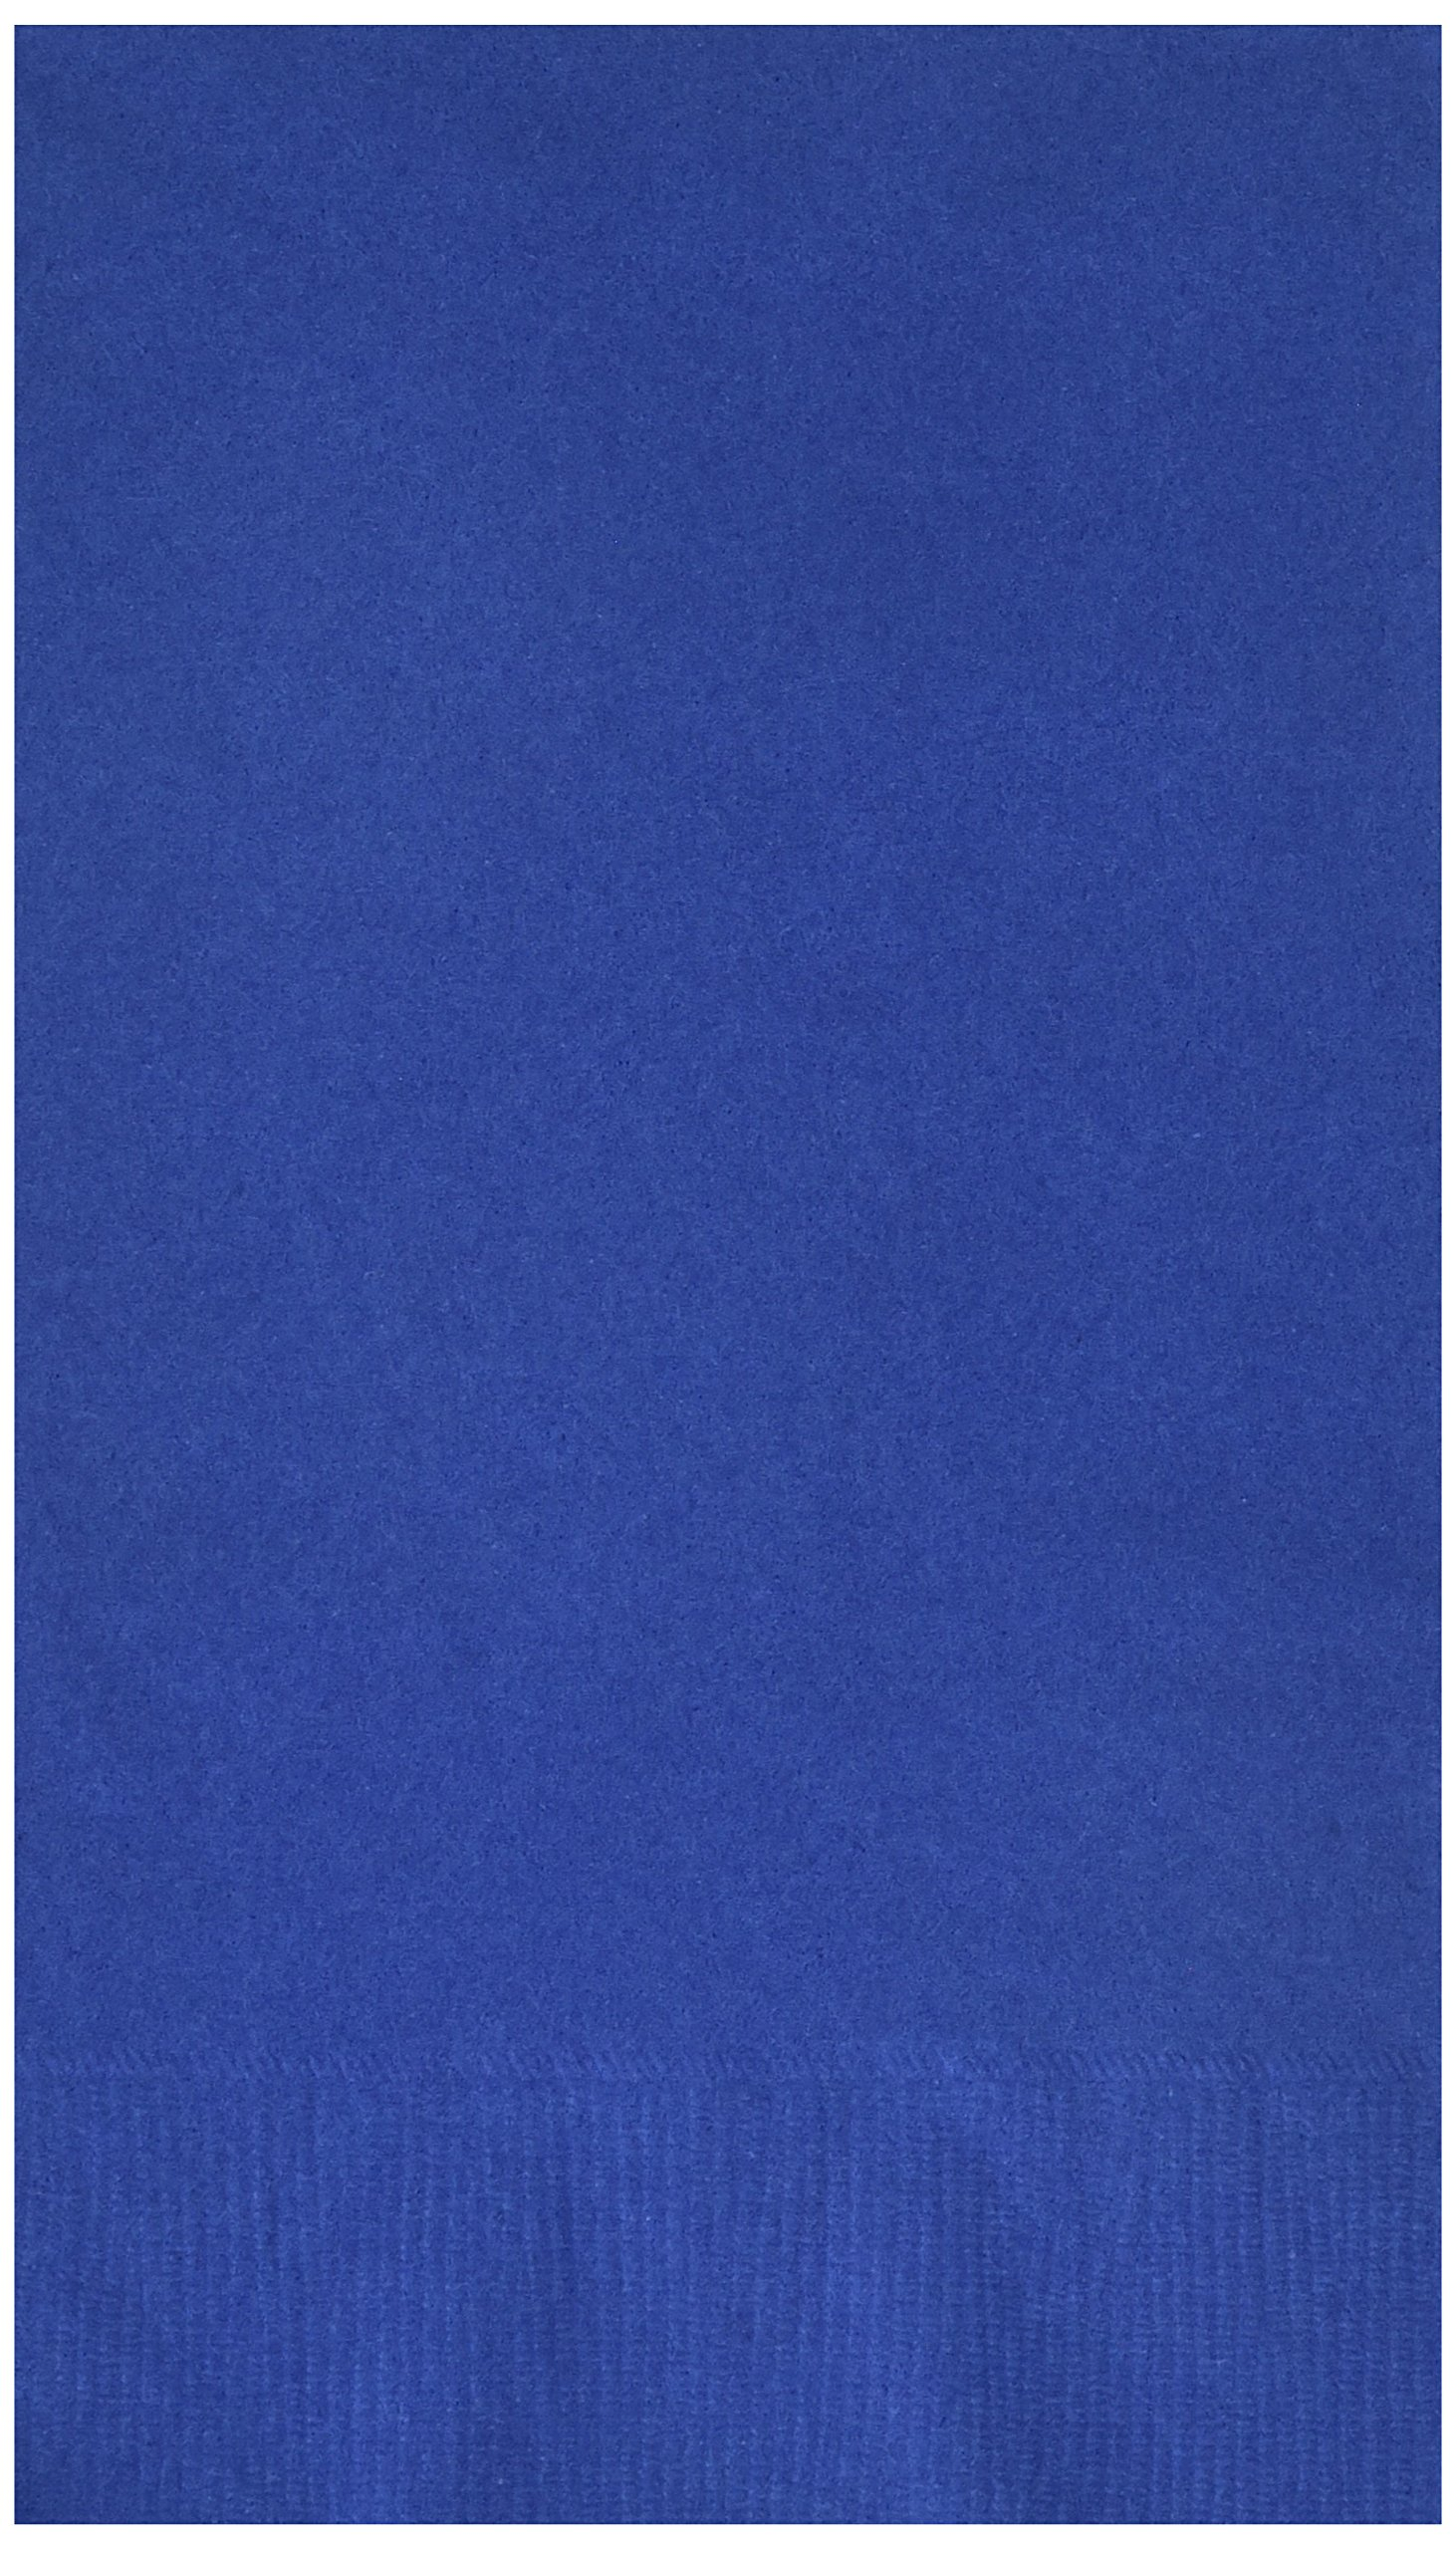 Bright Royal Blue 2-Ply Guest Towels   Party Supply   192 ct.